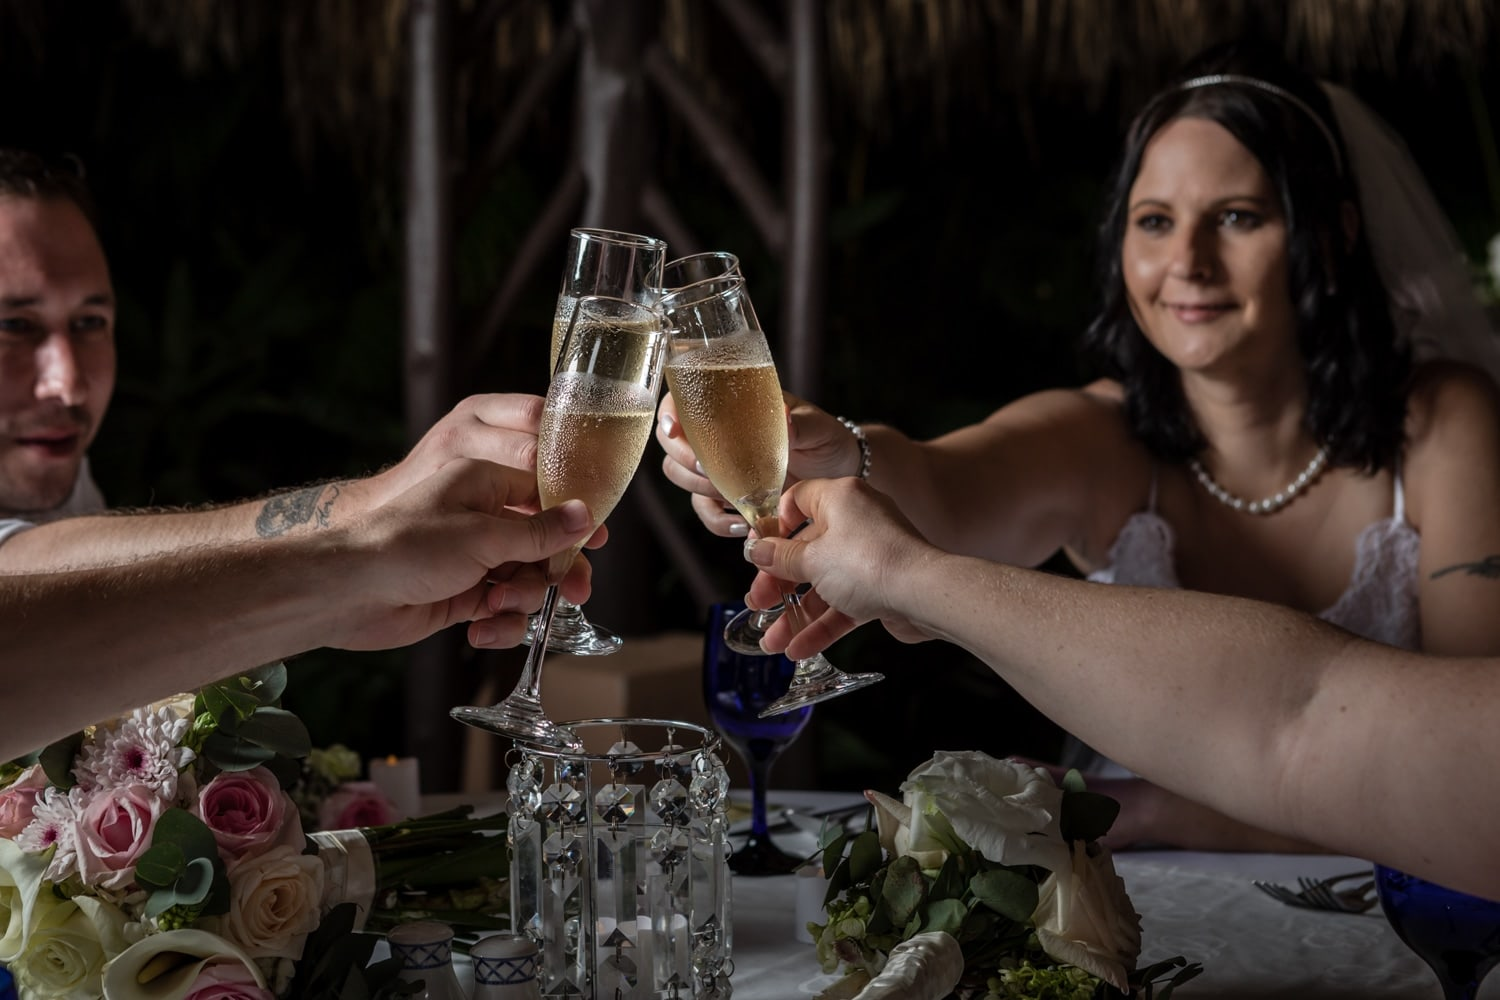 Bridal party celebrates matrimony with a toast during wedding reception.